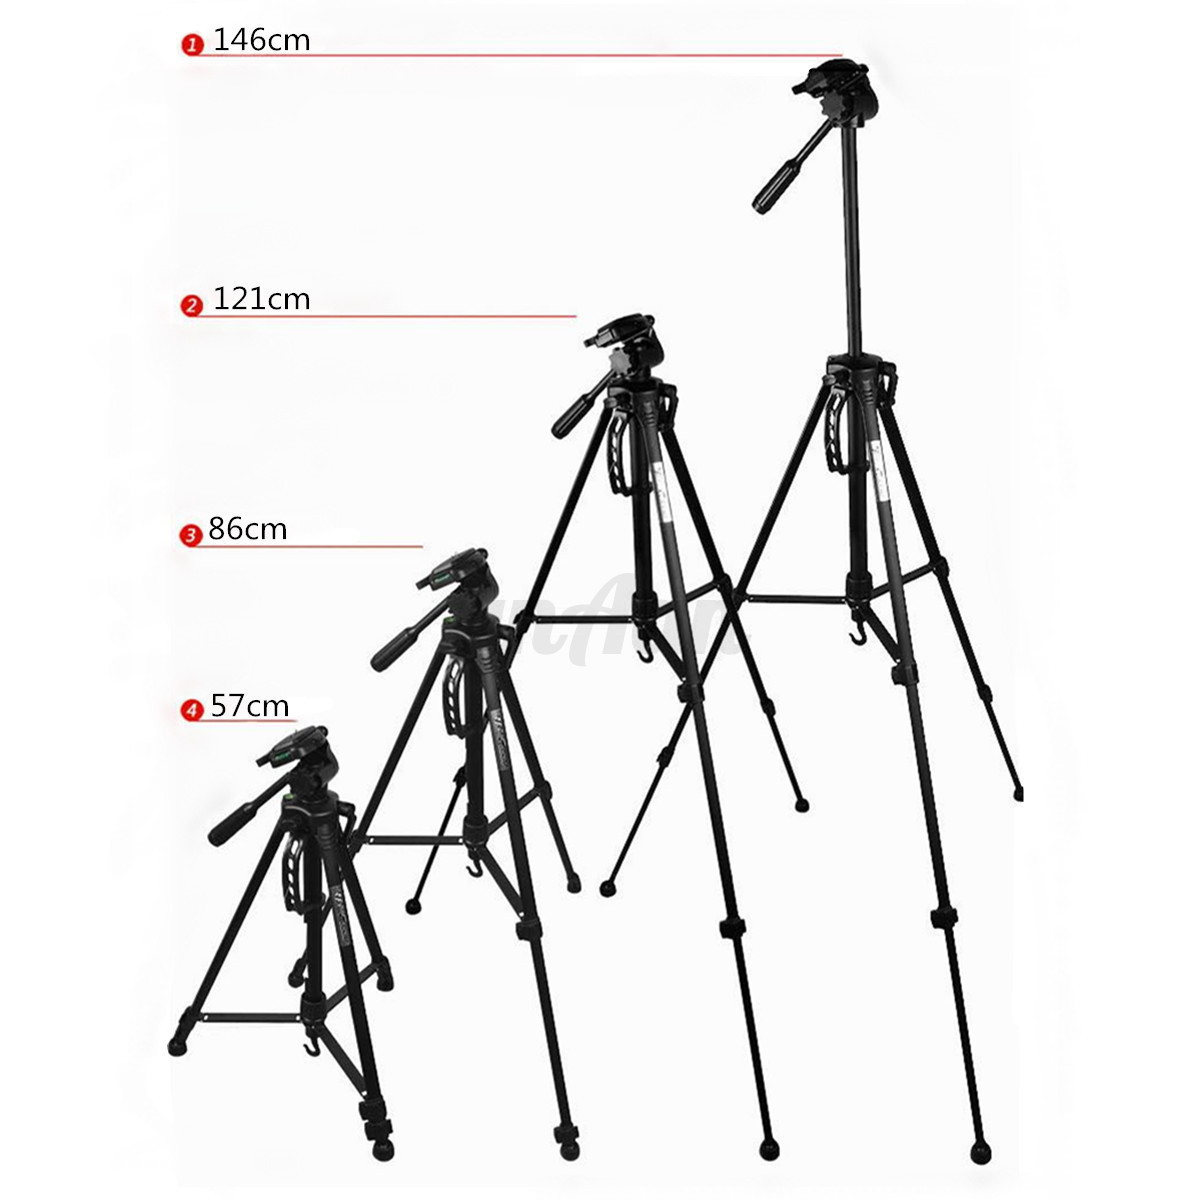 New Weifeng Wt Tripod Stand With Carry Case For Digital Camera Dslr